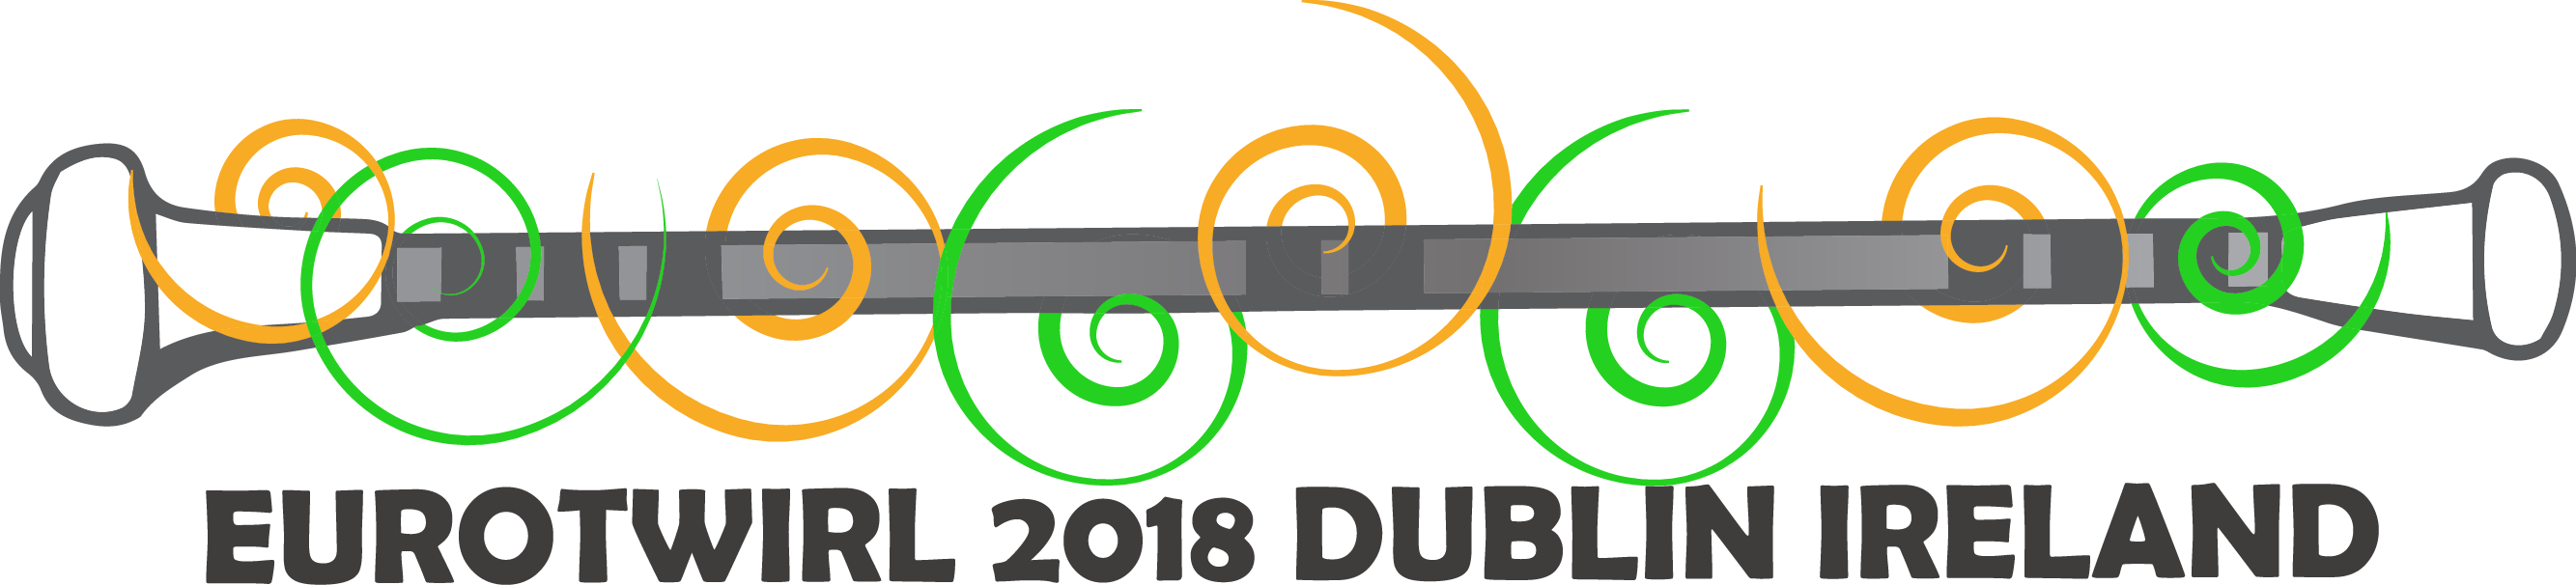 The 2018 European Cup will be held at the Sport Ireland National Indoor Arena in Dublin, Ireland between July 4-8 2018.